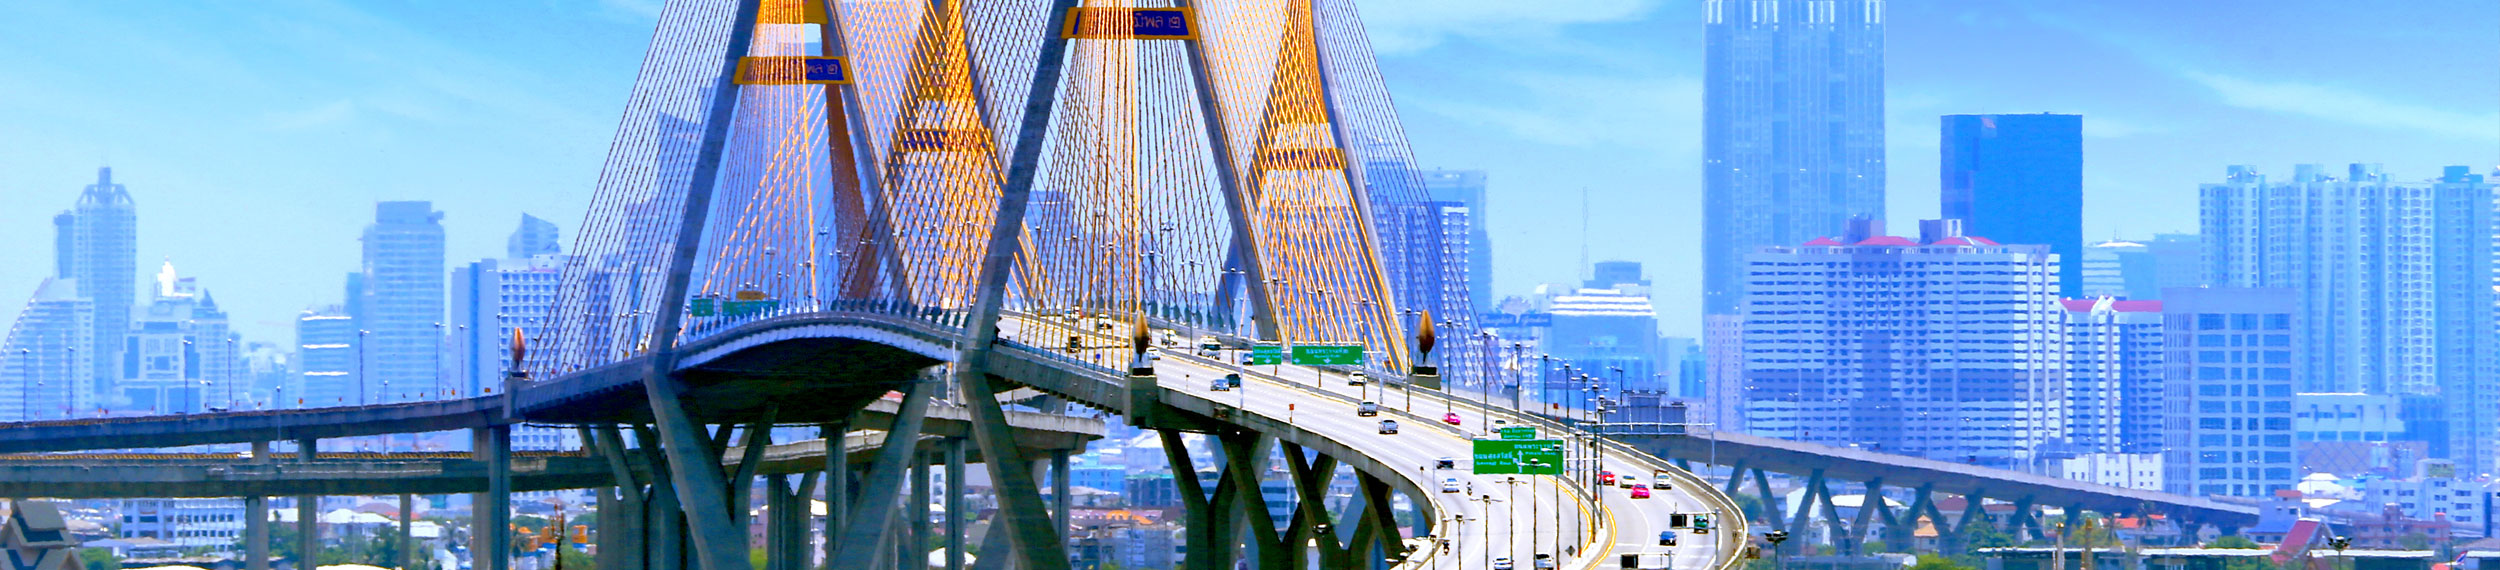 international-Bhumibol Bridge with traffic and blue buildings in the background in Bangkok, Thailand.